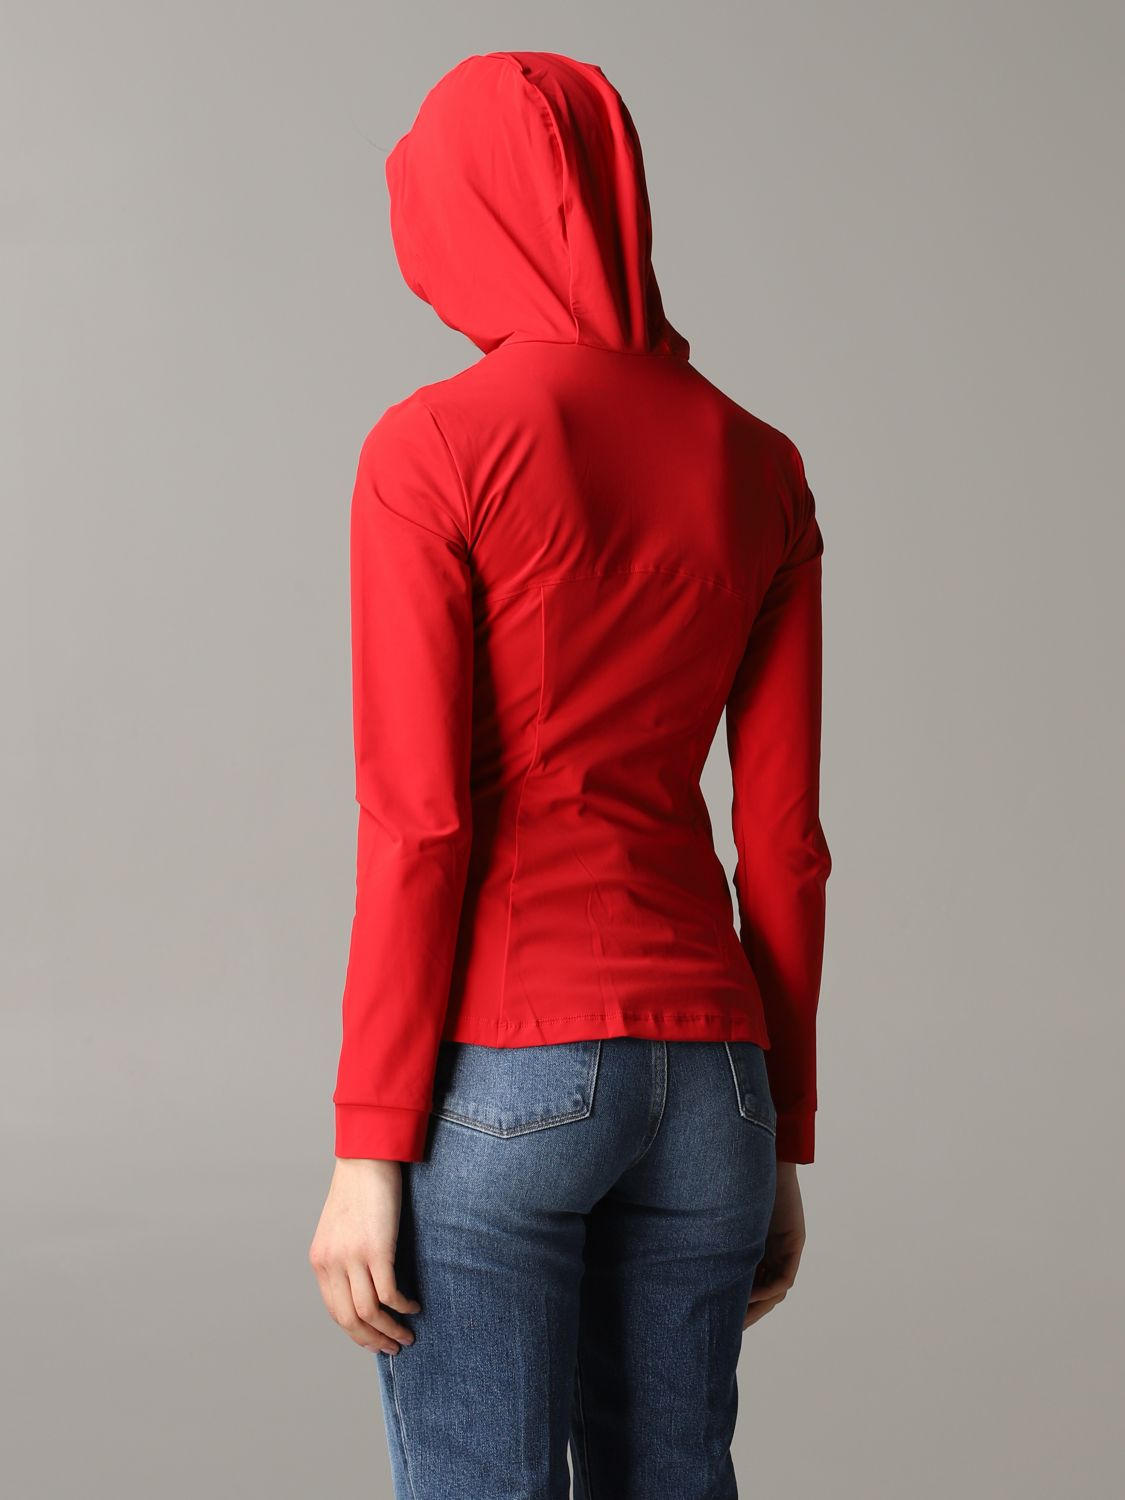 Save The Duck hooded sweatshirt red 3